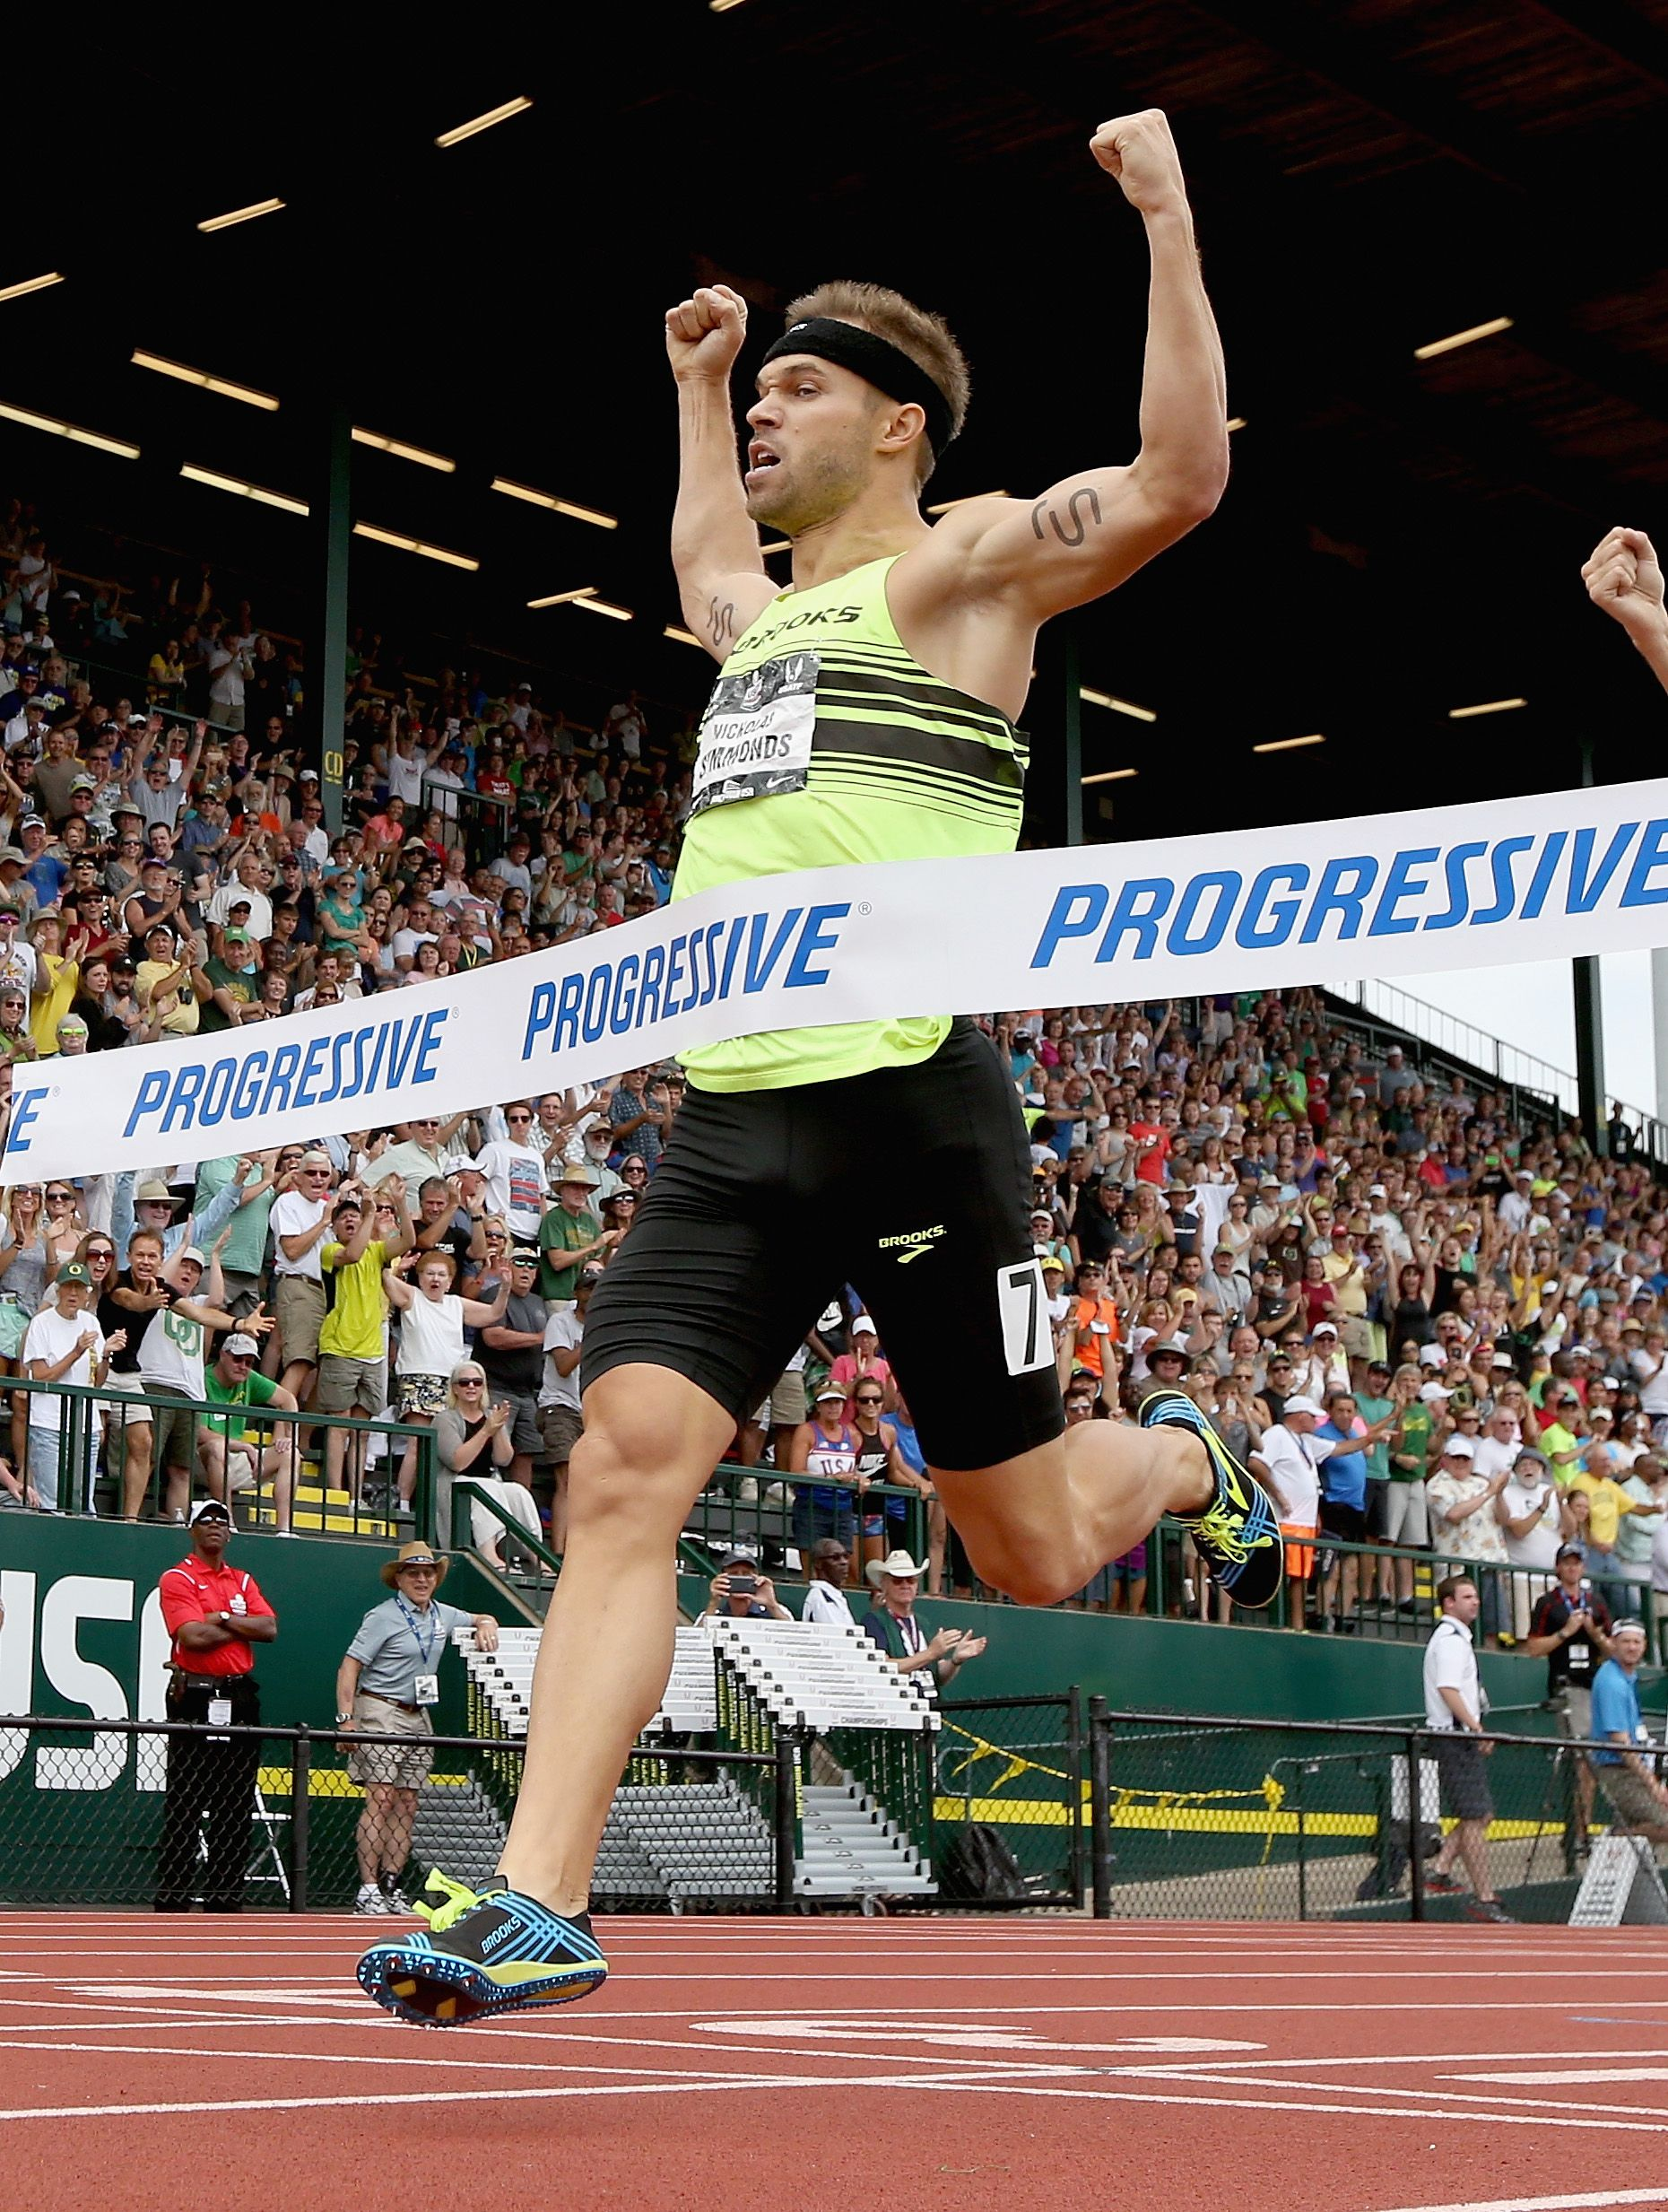 A Former Olympian Reveals the Three Ways Pro Runners Make Money